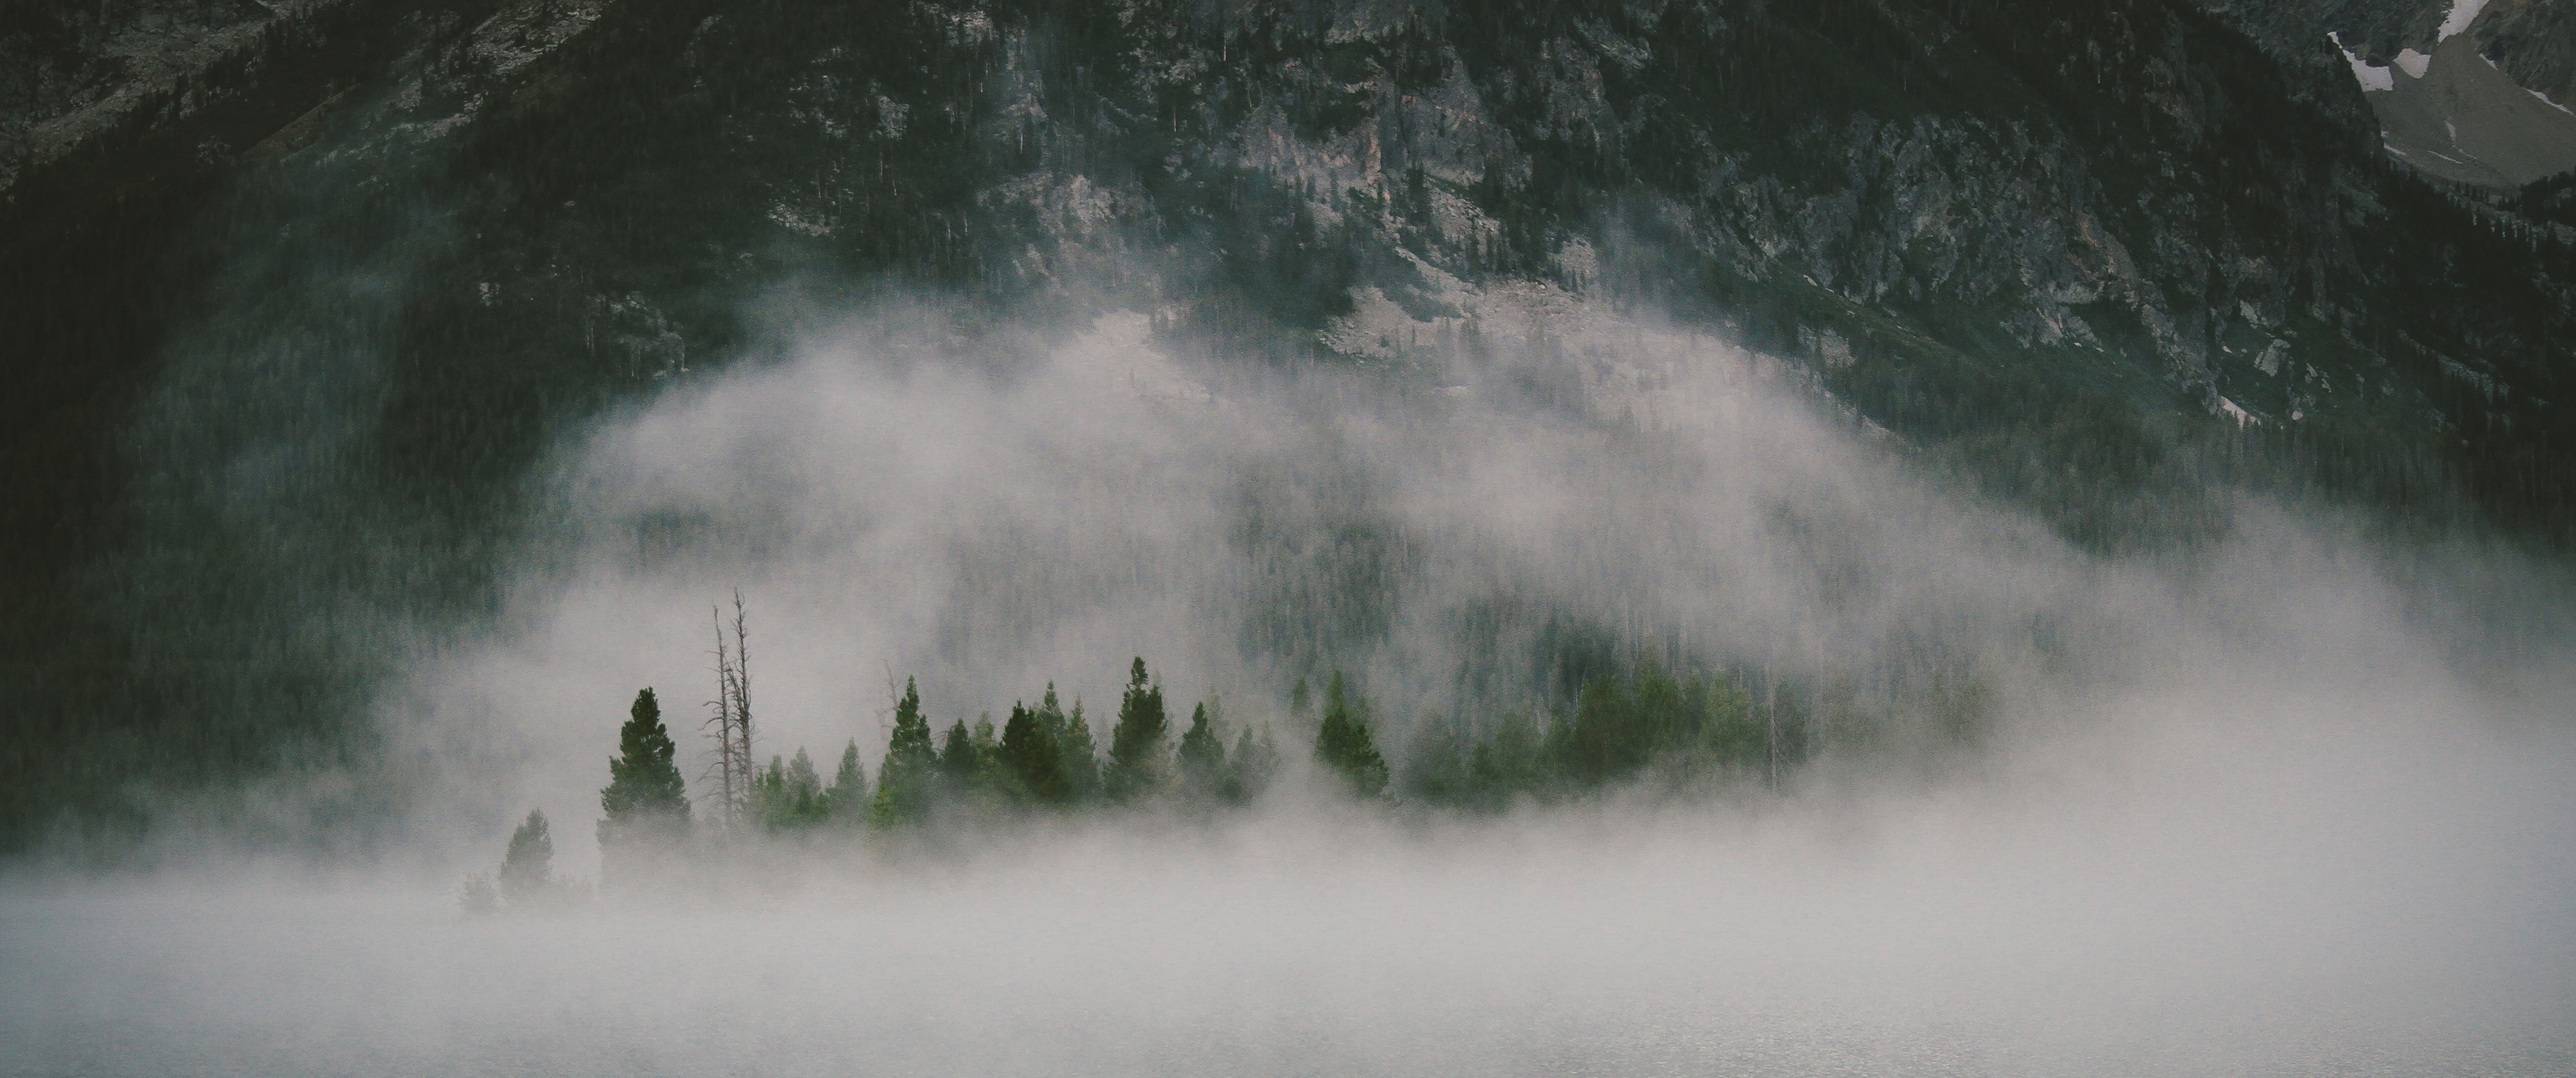 Foggy Mountains 219 Wallpaper Ultrawide Monitor 219 Wallpapers 3440x1440